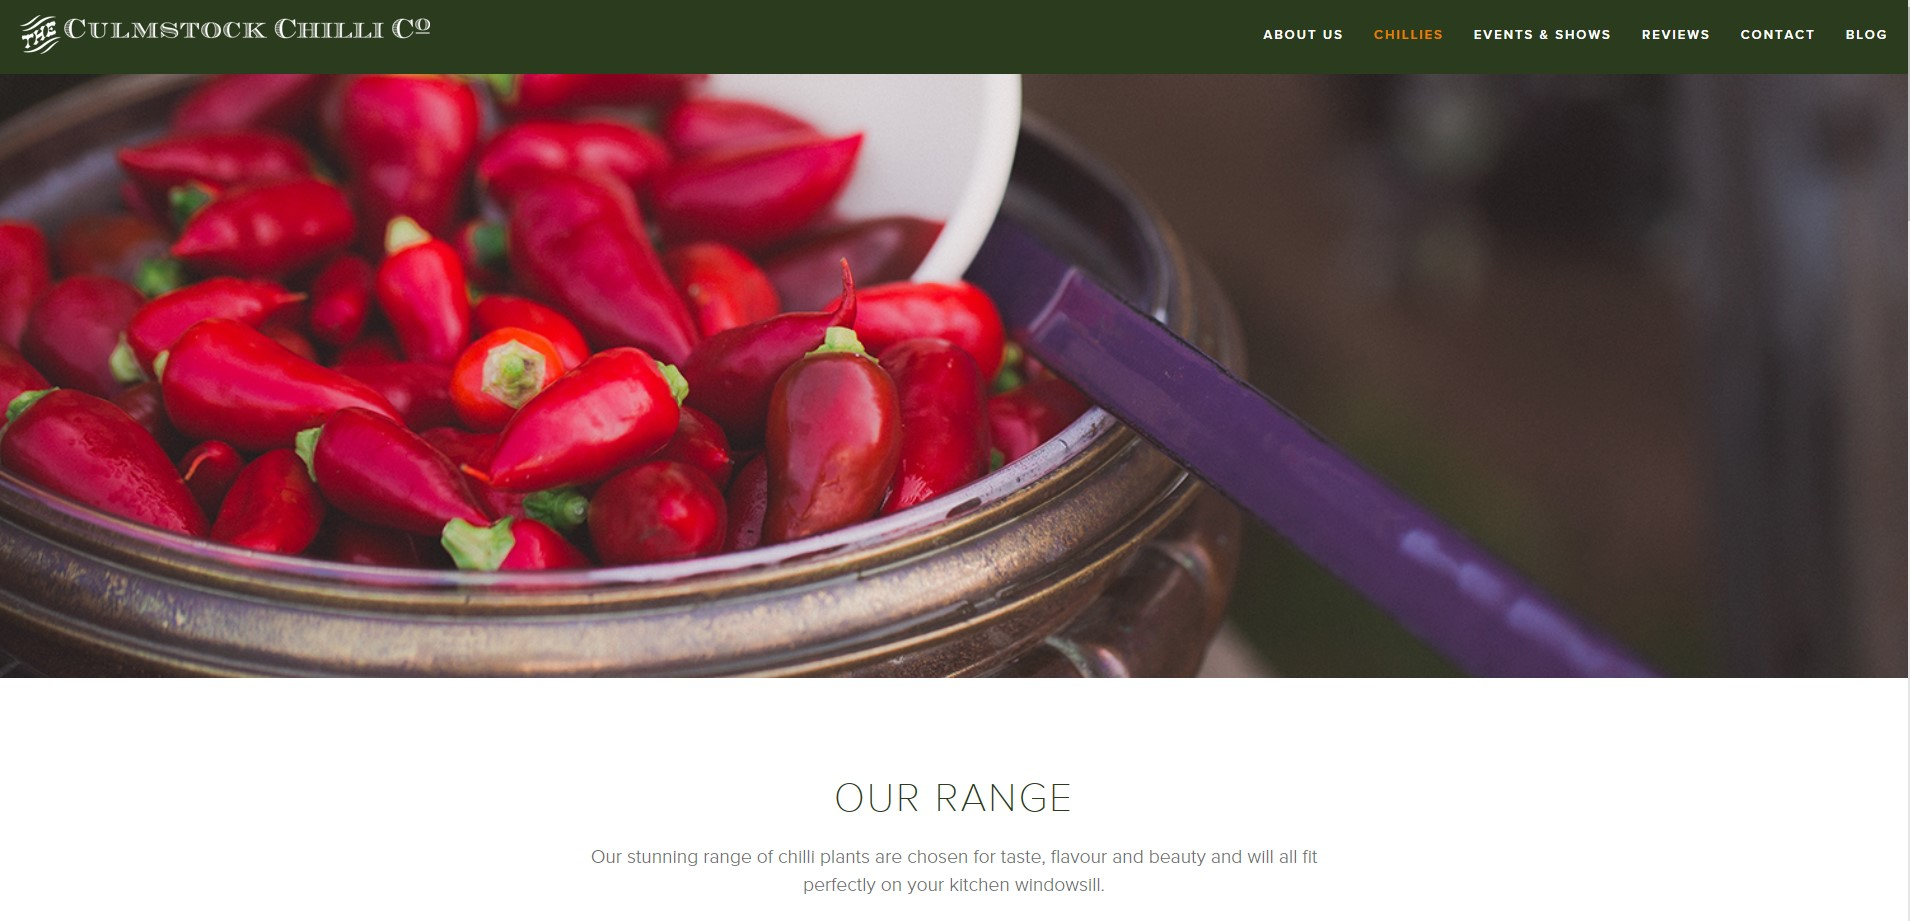 Screenshot of a bowl of chillis for the Cumlstock Chilli Co website